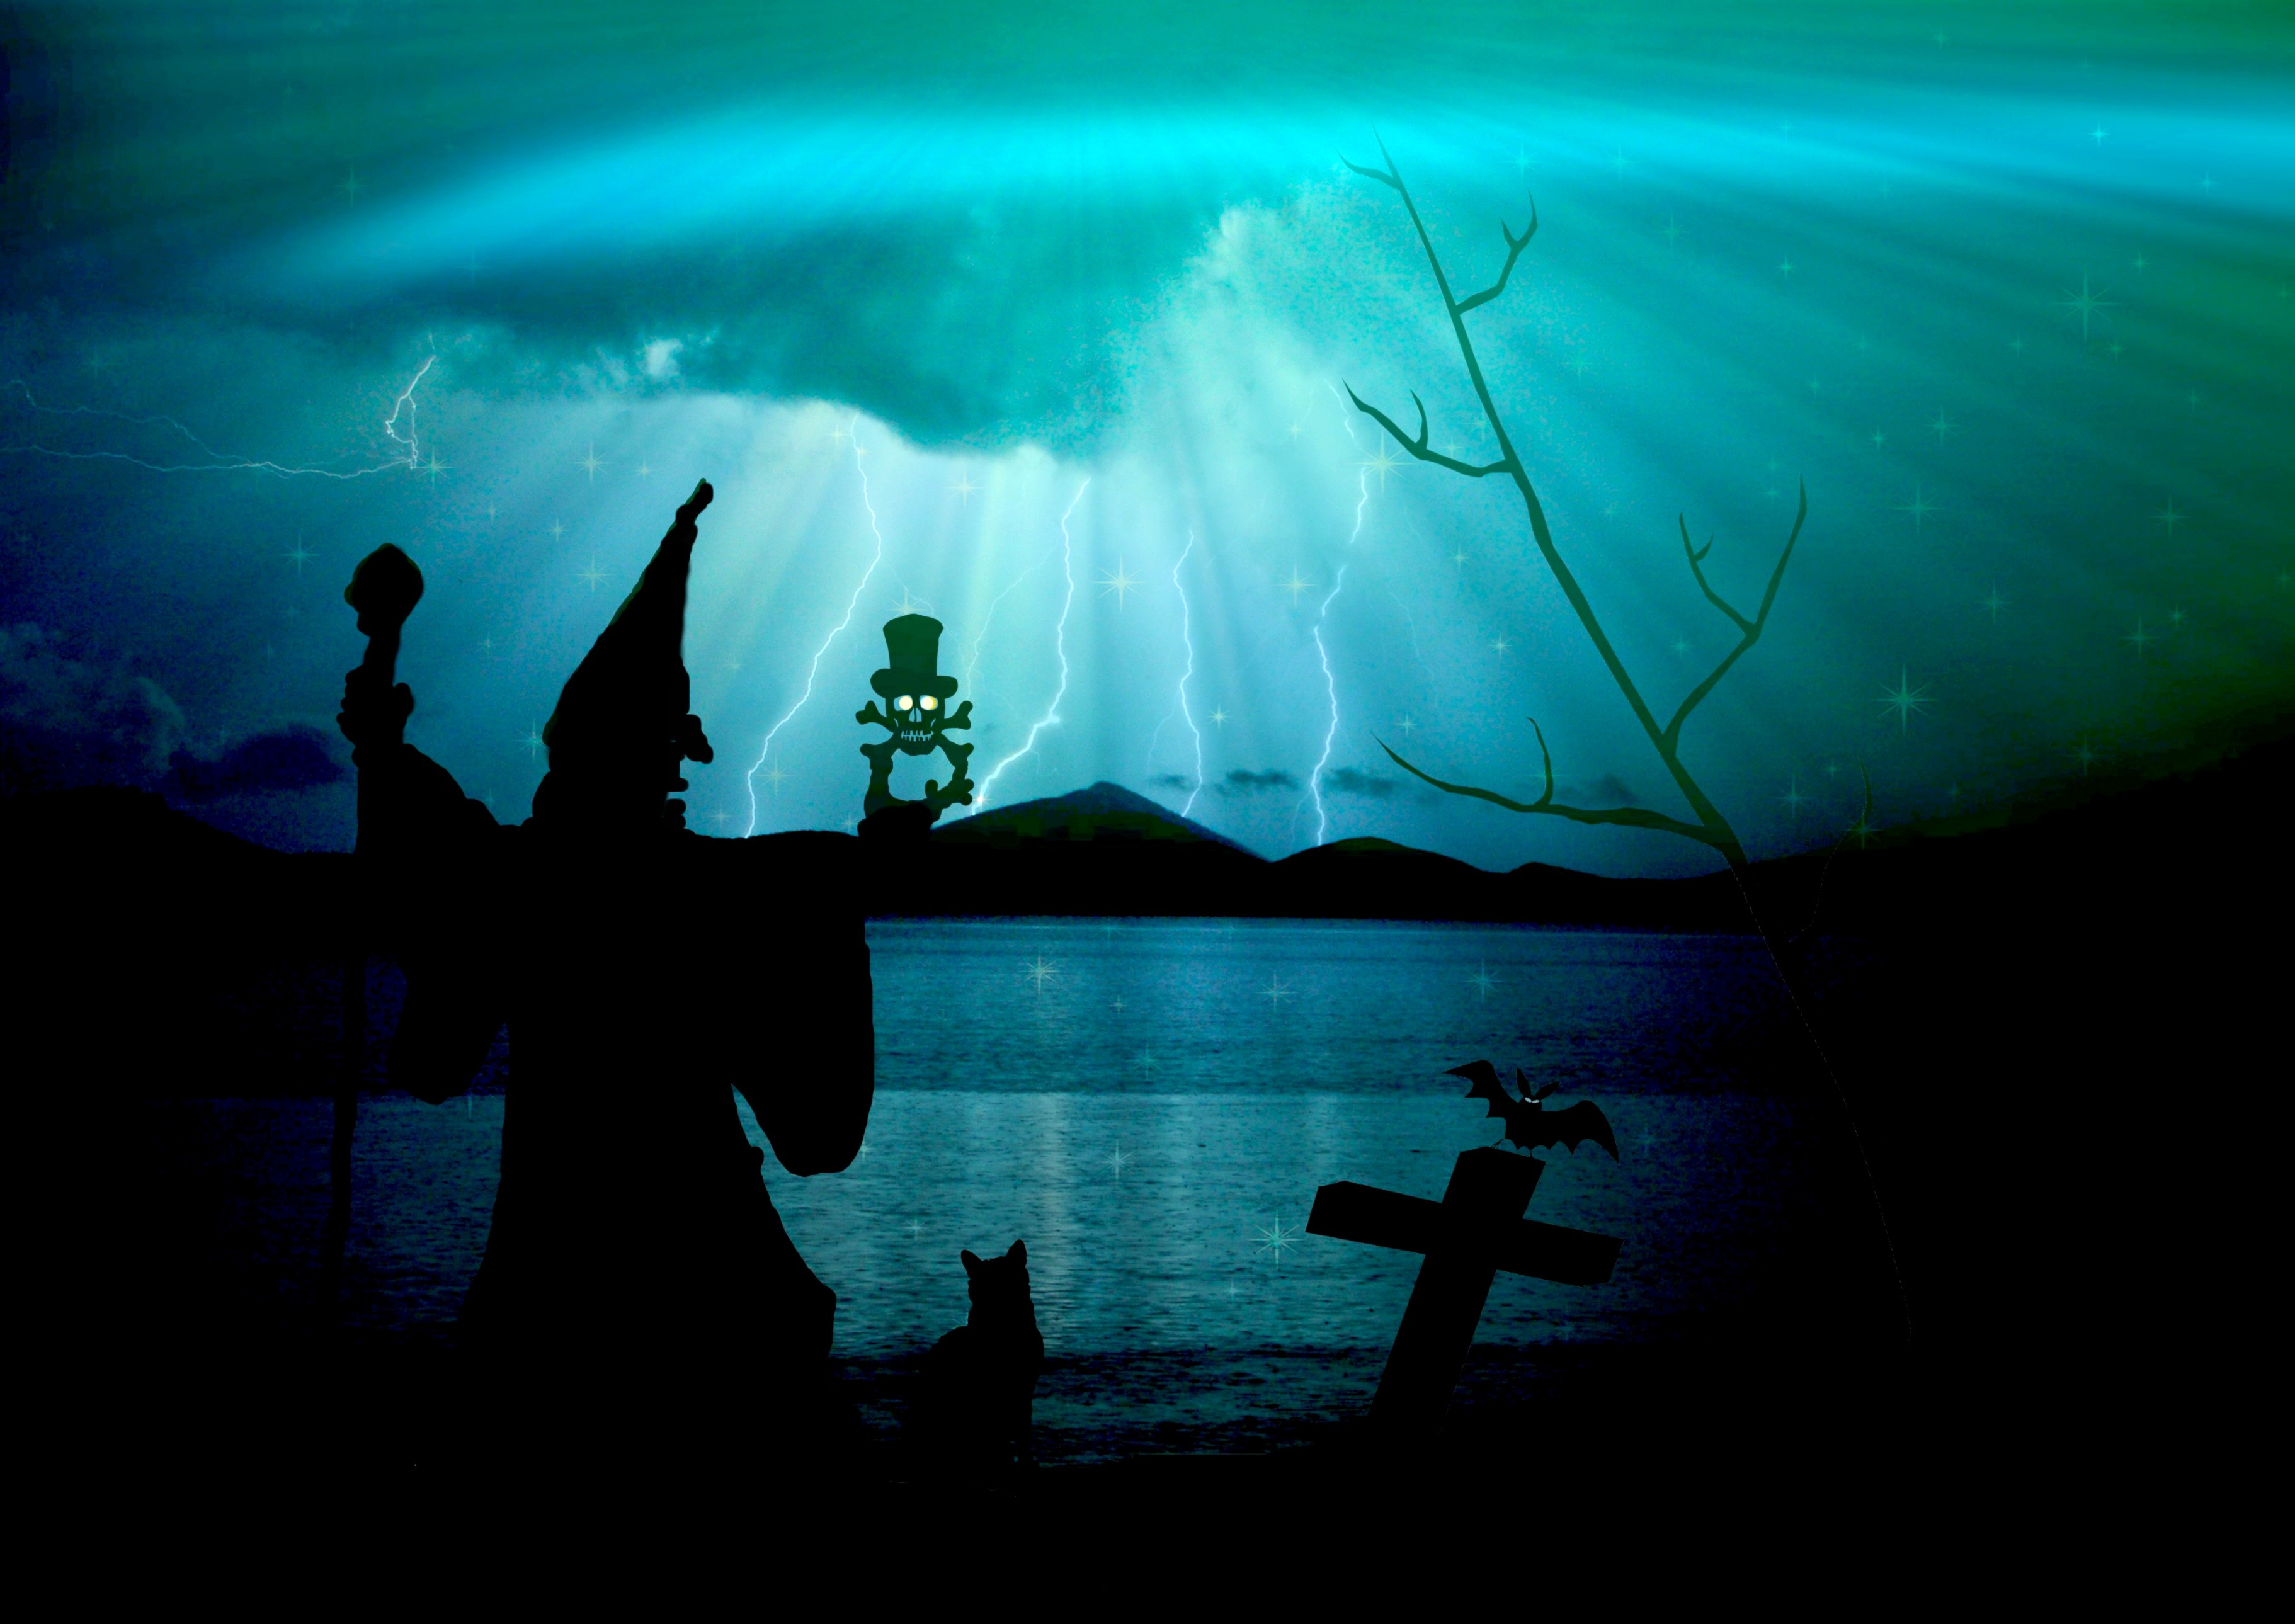 Creepy Witch In Fantasy Blue Landscape With Lightning Image